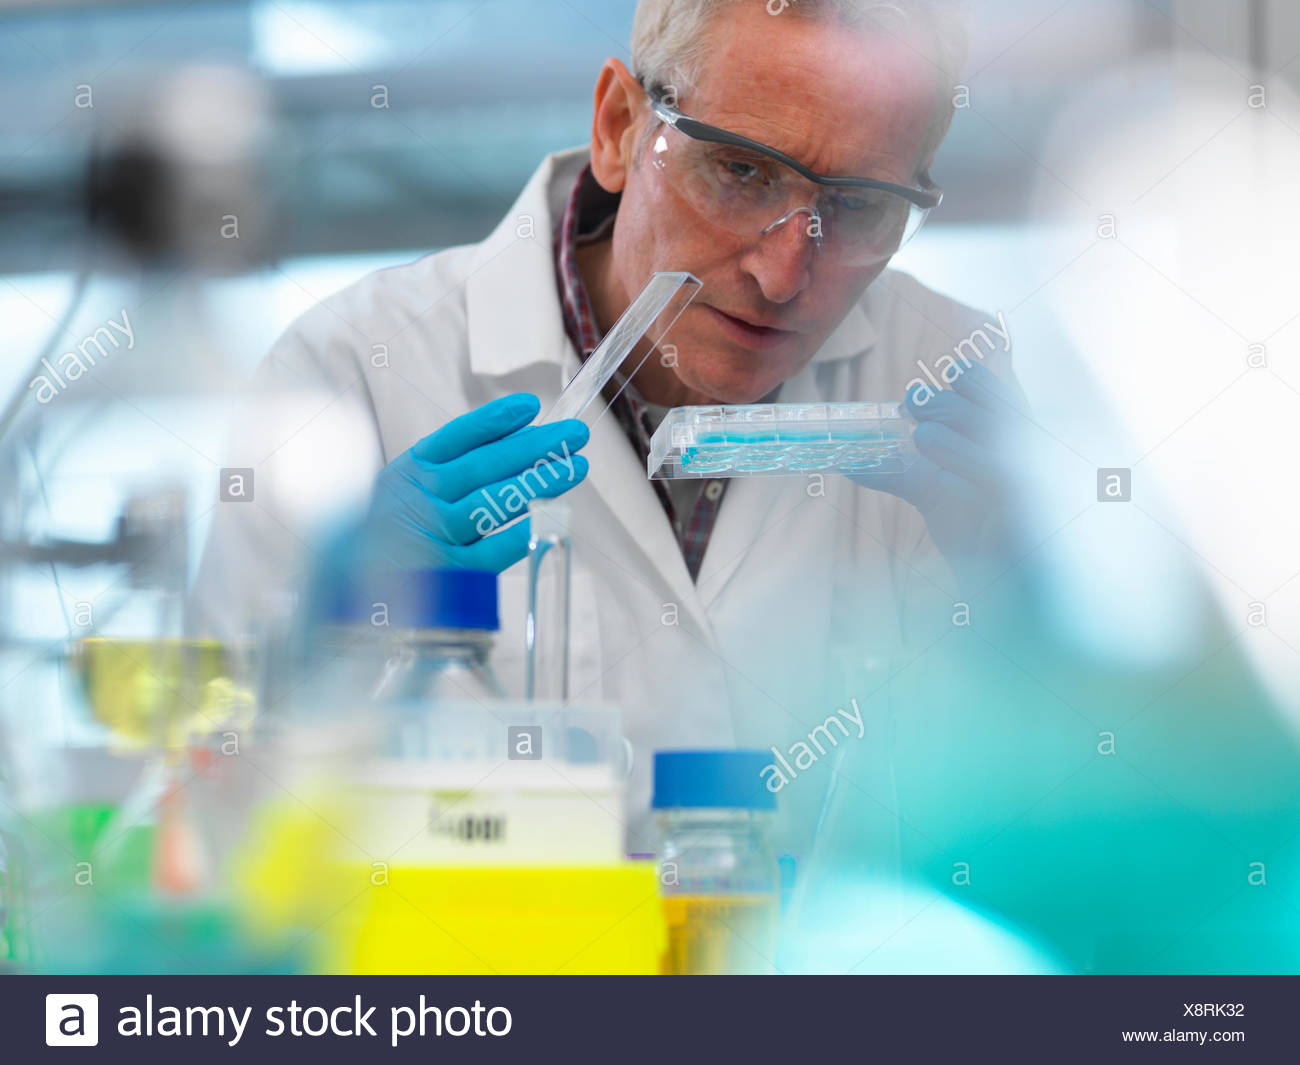 Biotechnology Research, scientist viewing samples in a multi well plate during an experiment in the laboratory - Stock Image